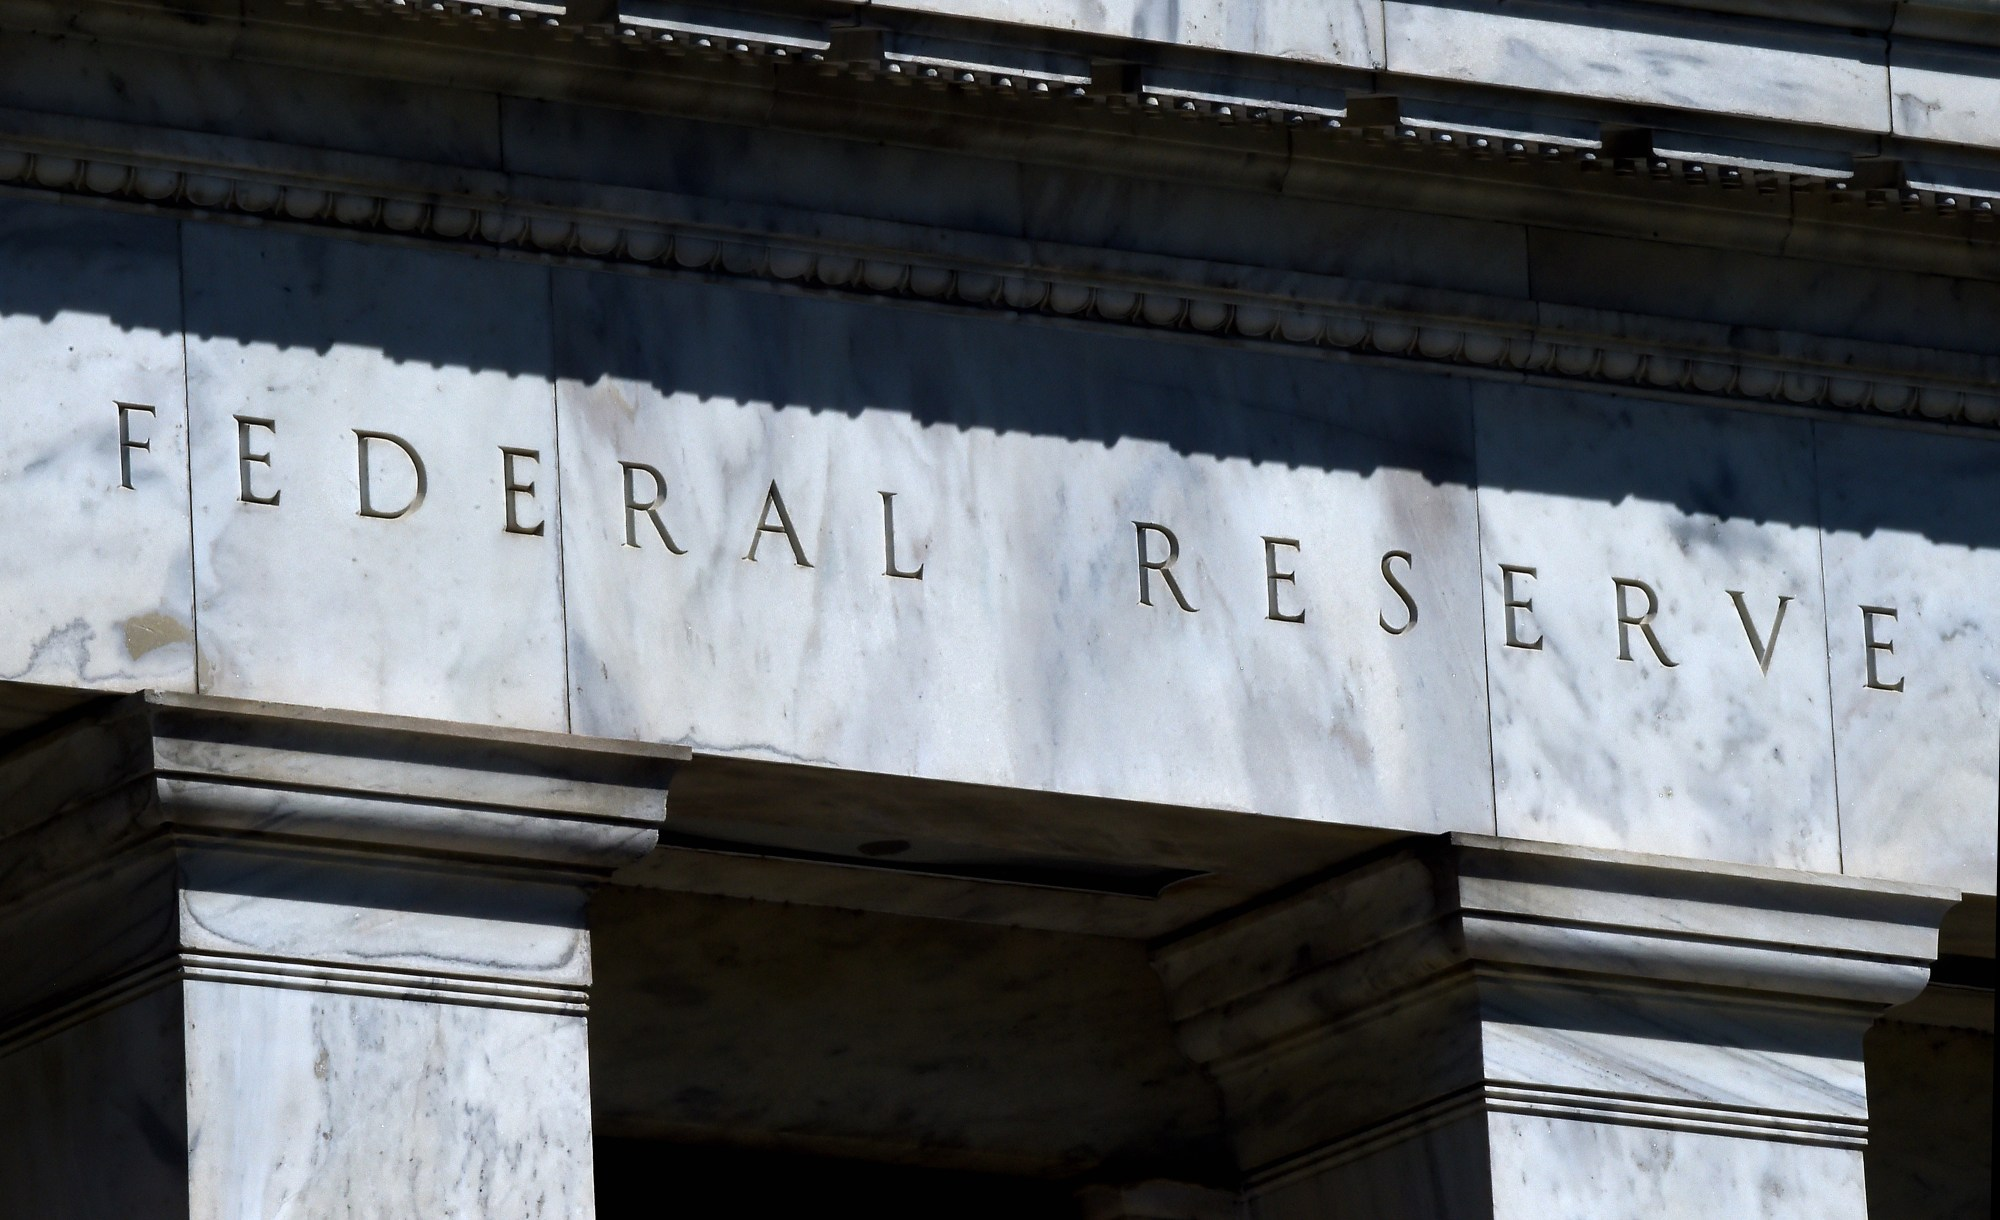 The Federal Reserve building is seen on April 2, 2020, in Washington, D.C. (Olivier DOULIERY / AFP / Getty Images)